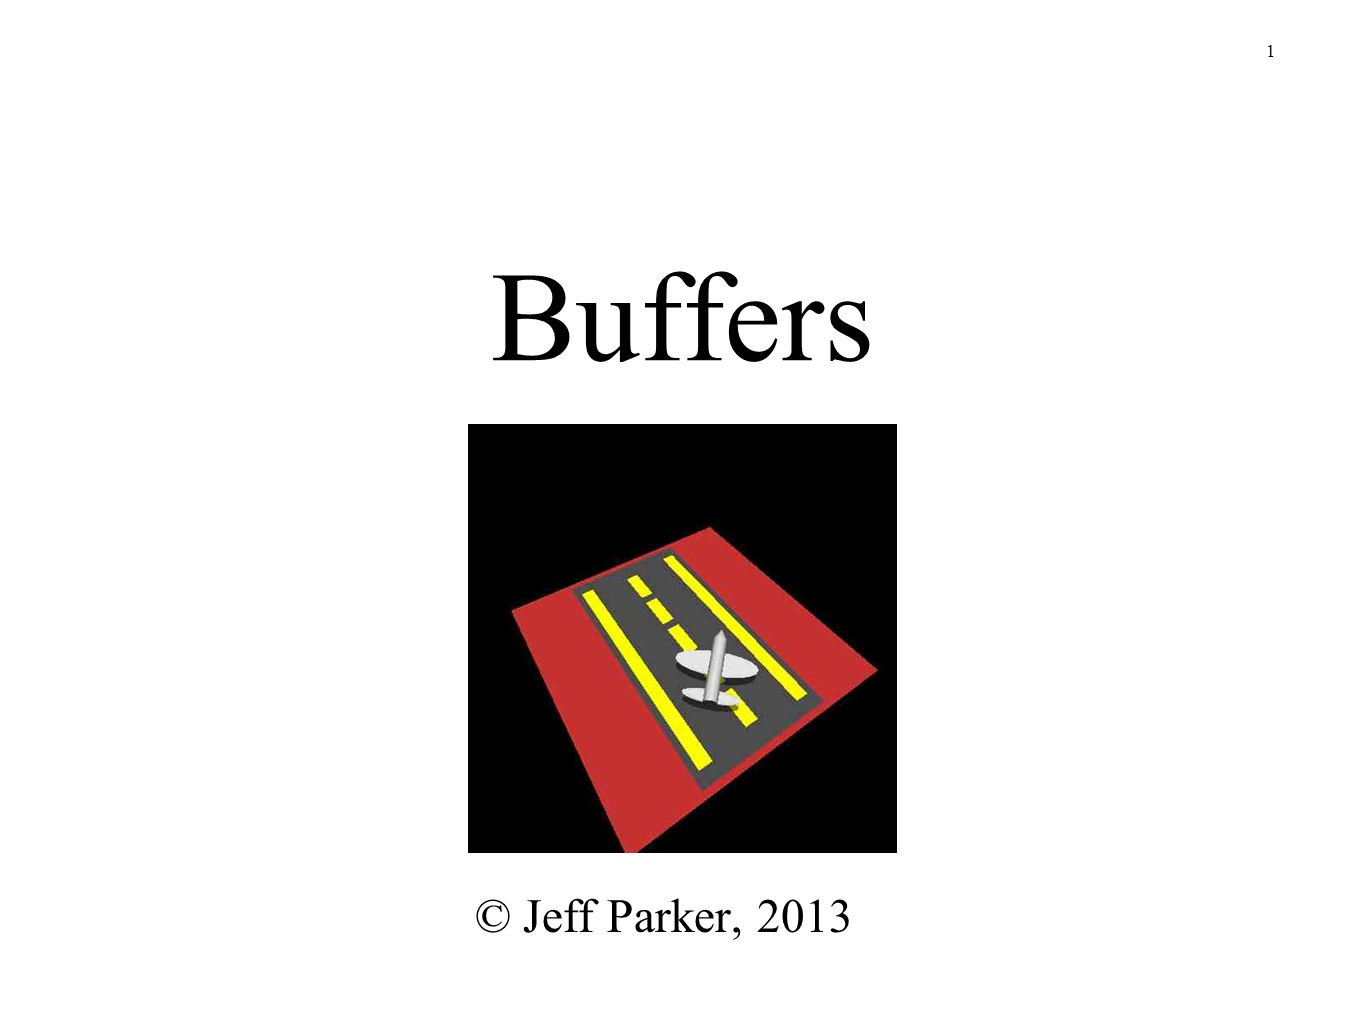 Buffers © Jeff Parker, 2013